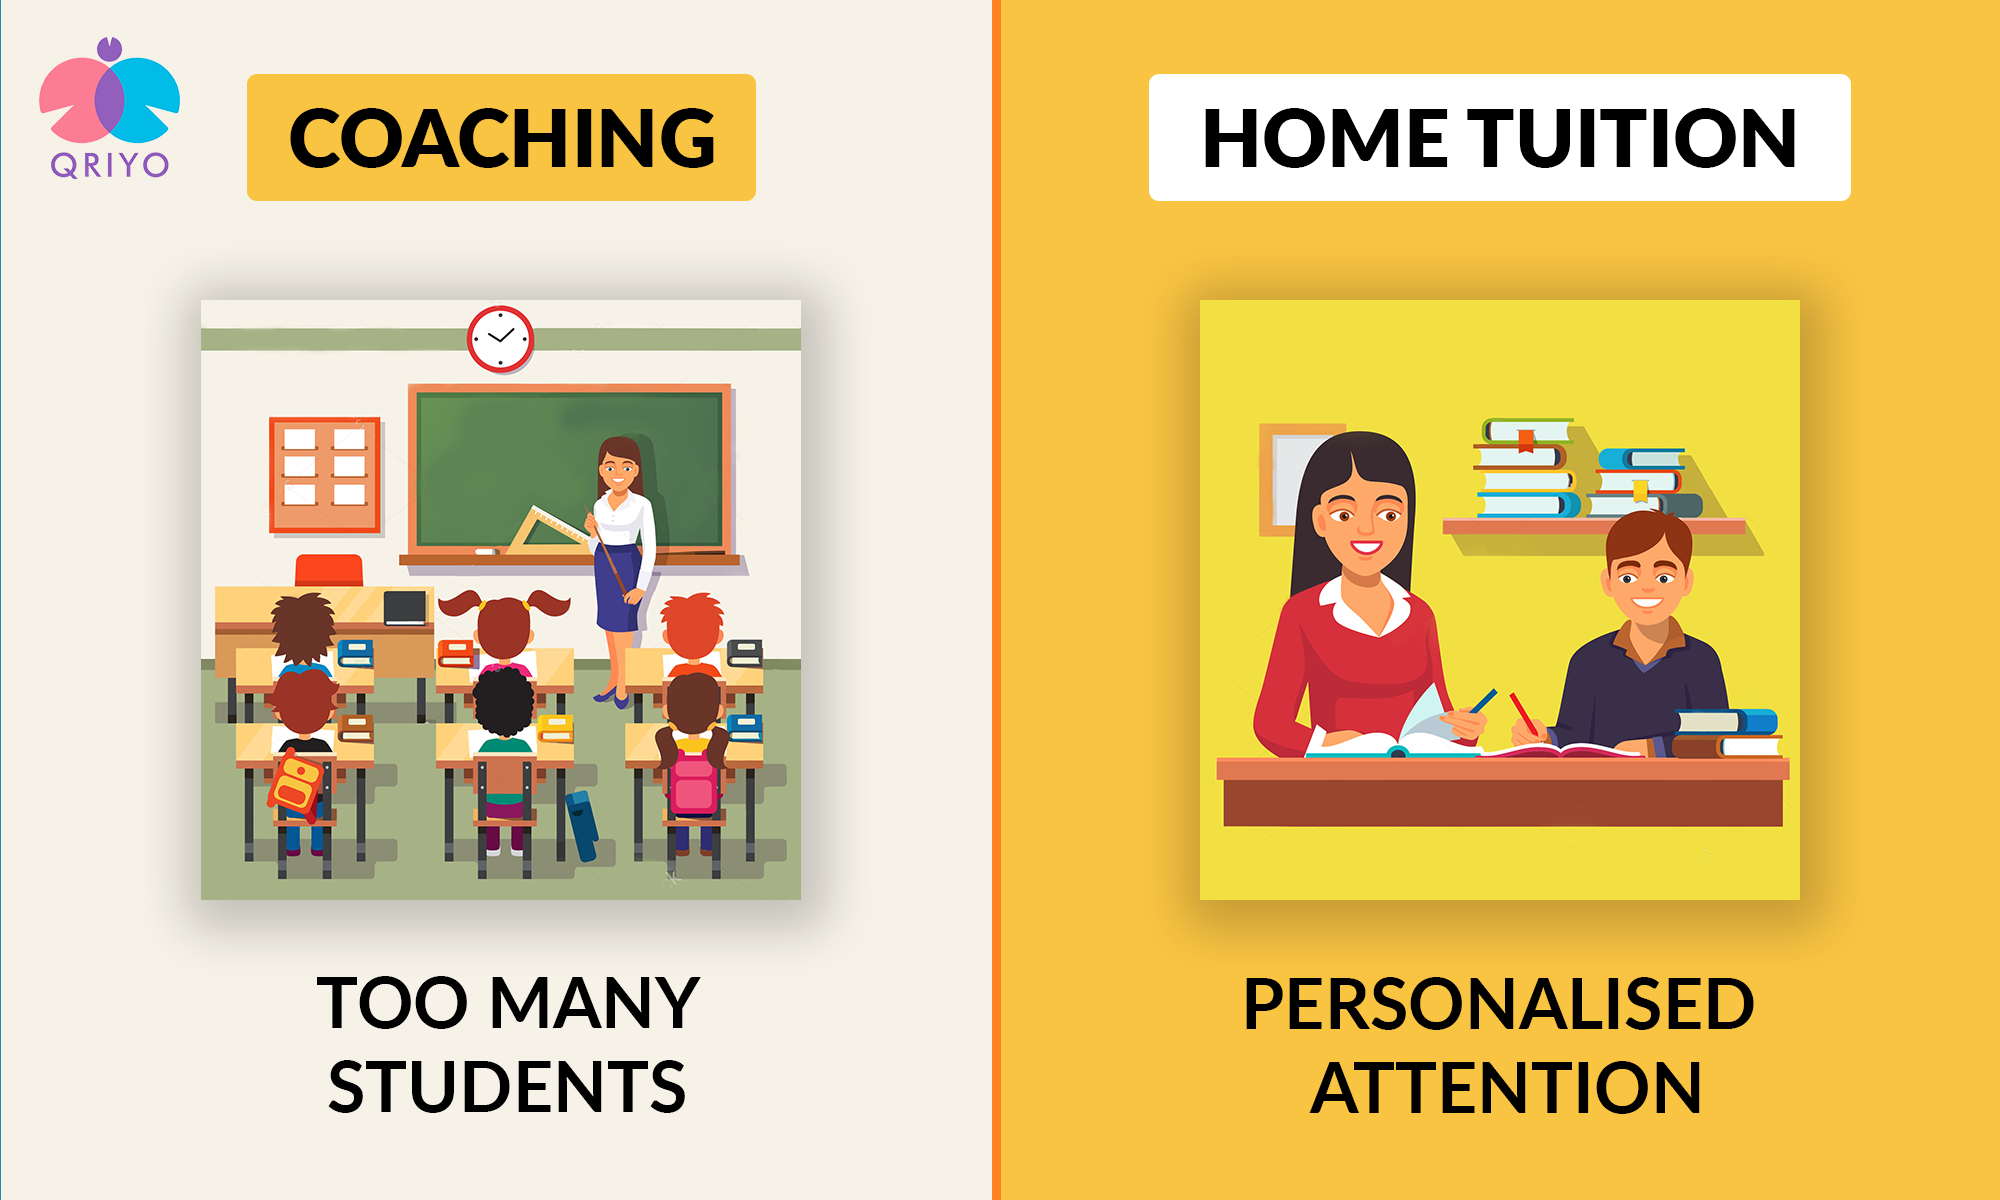 Home tuitions gives personalized attention, Coachings cannot.